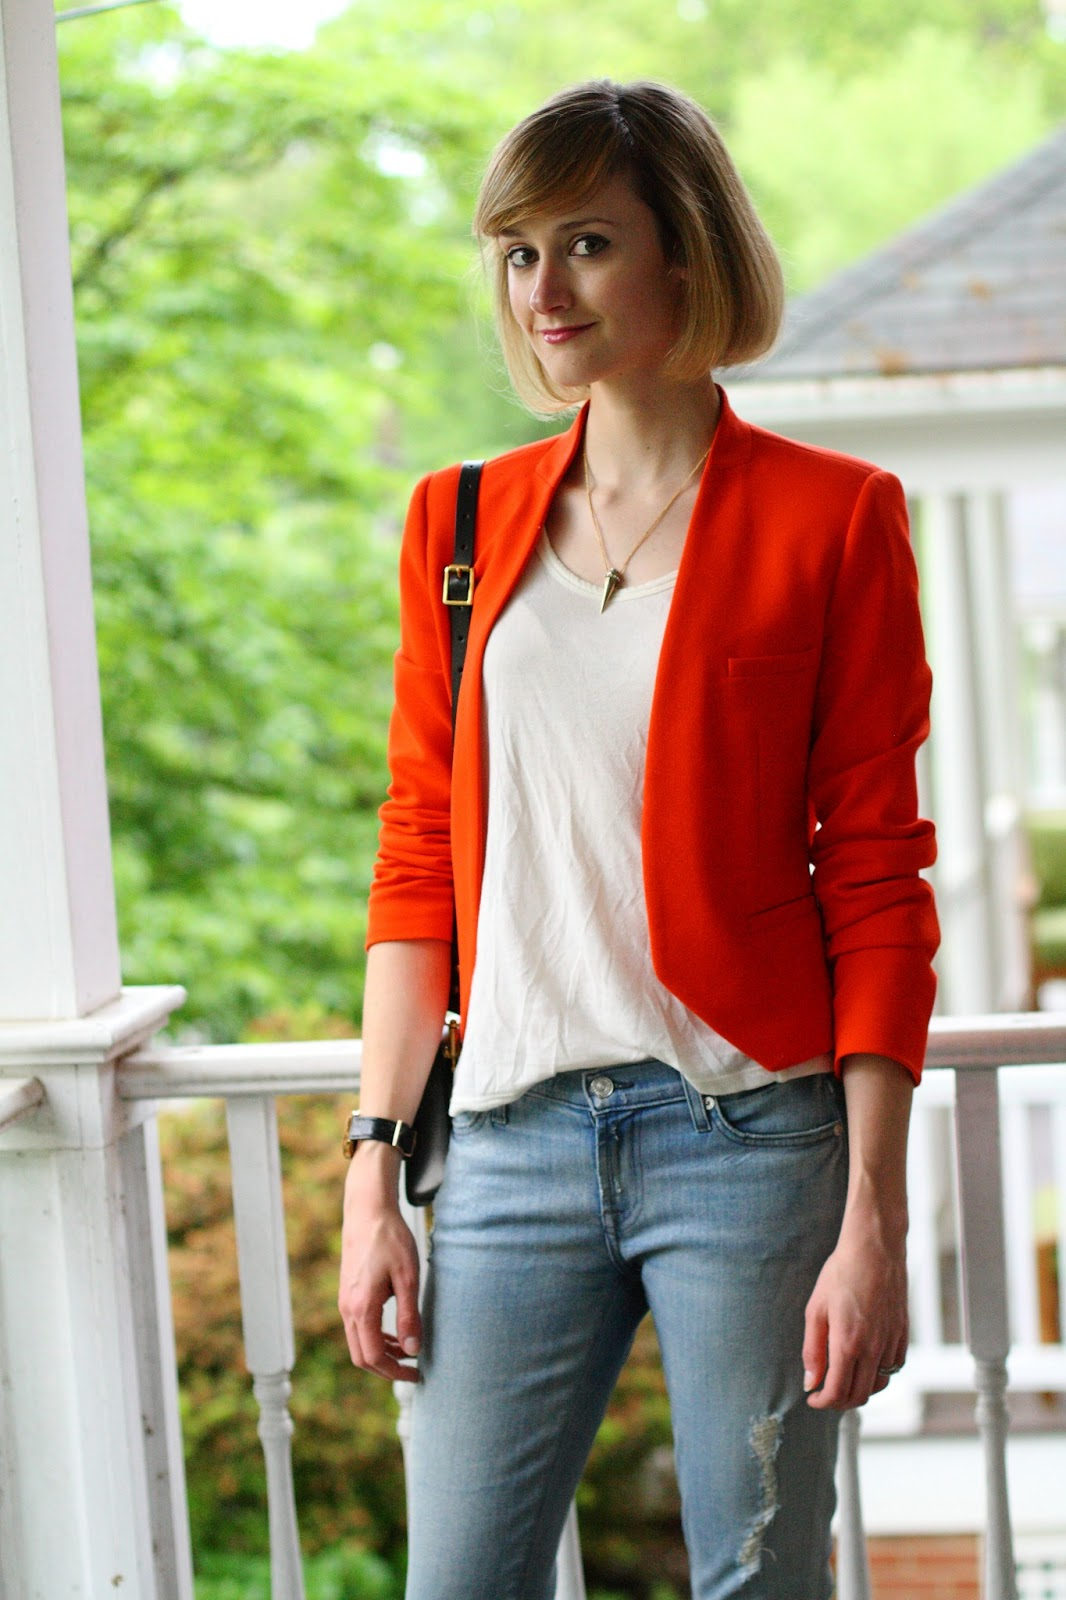 A.V. Max necklace, orange blazer, and distressed denim